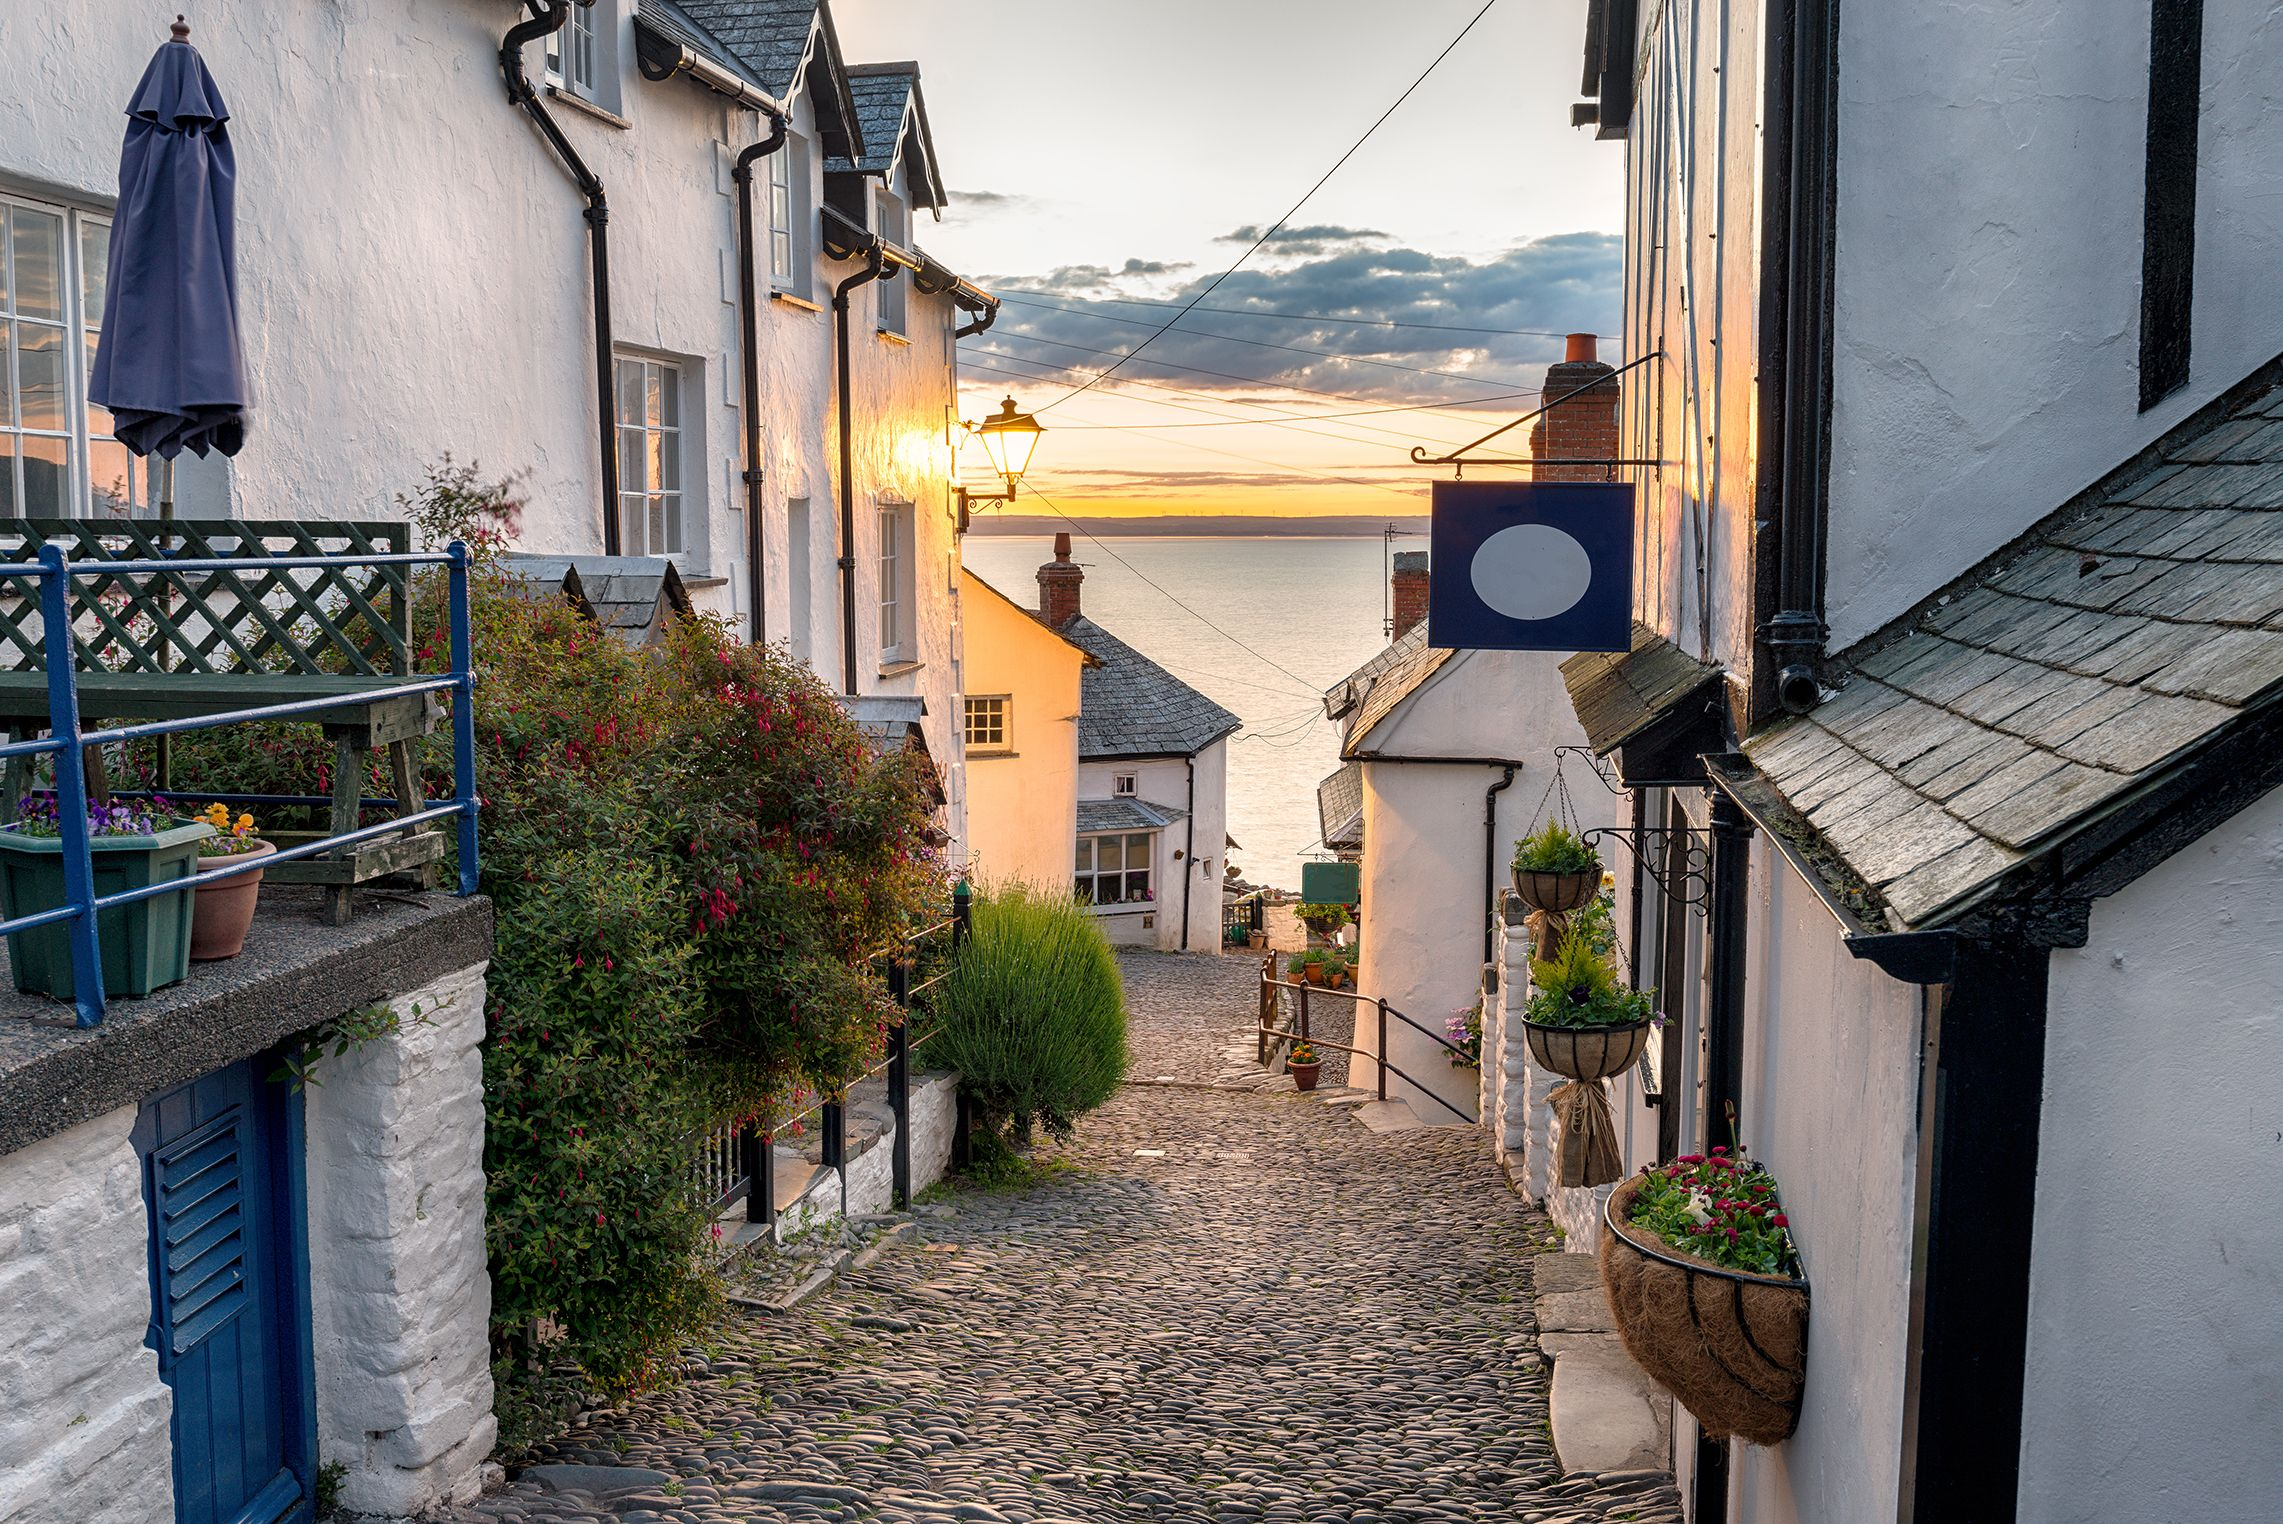 20 of the most tranquil villages and towns in the UK